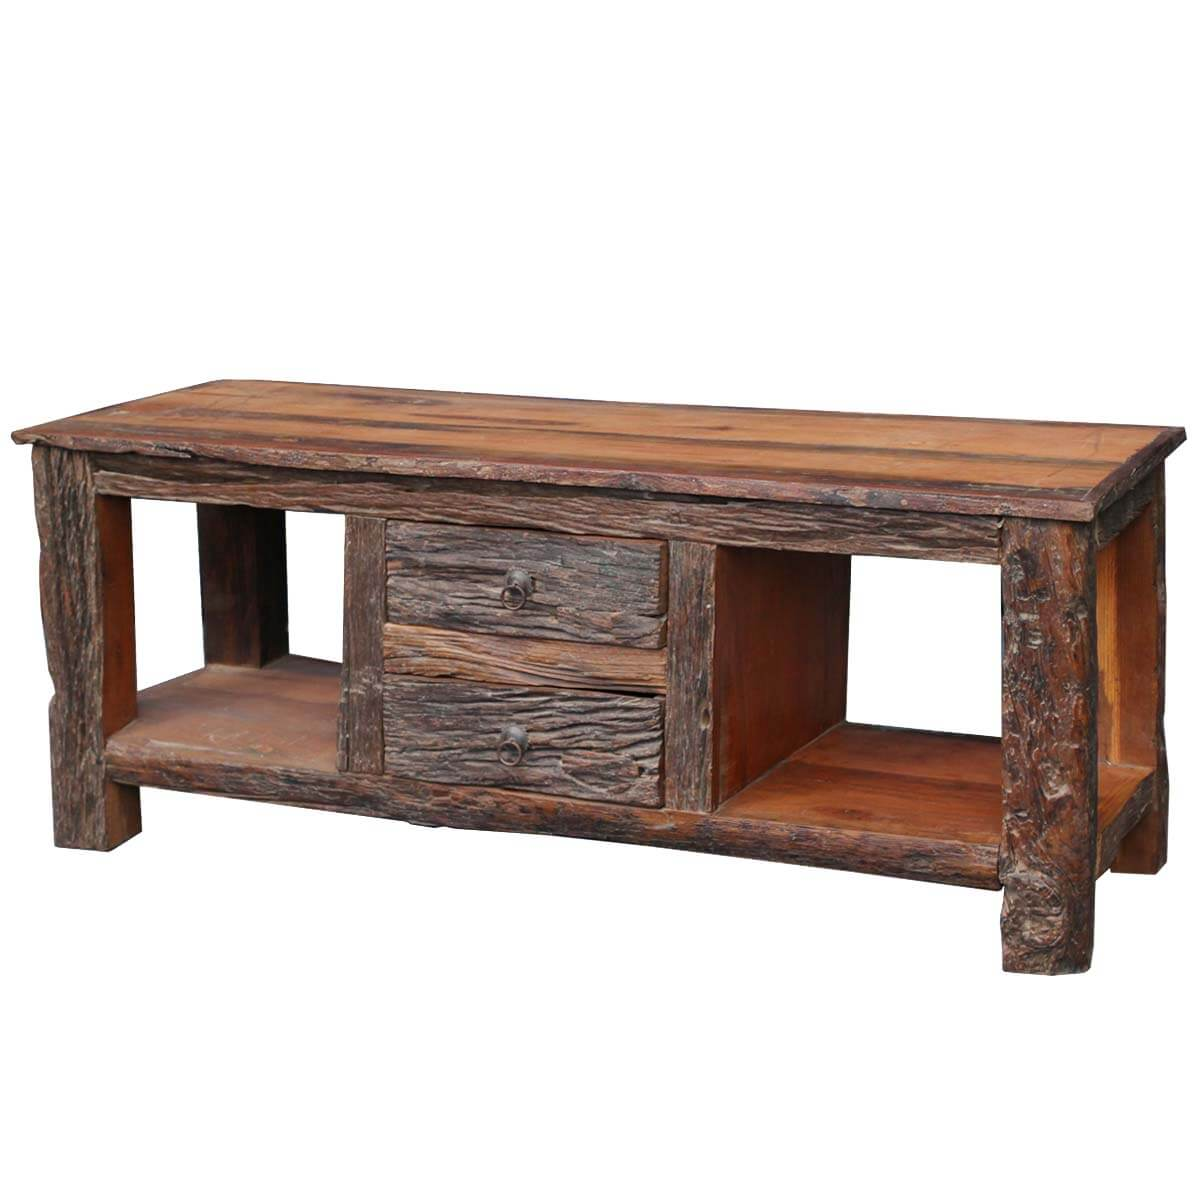 Malverne Rustic Bark Railroad Reclaimed Wood TV Media Console Table